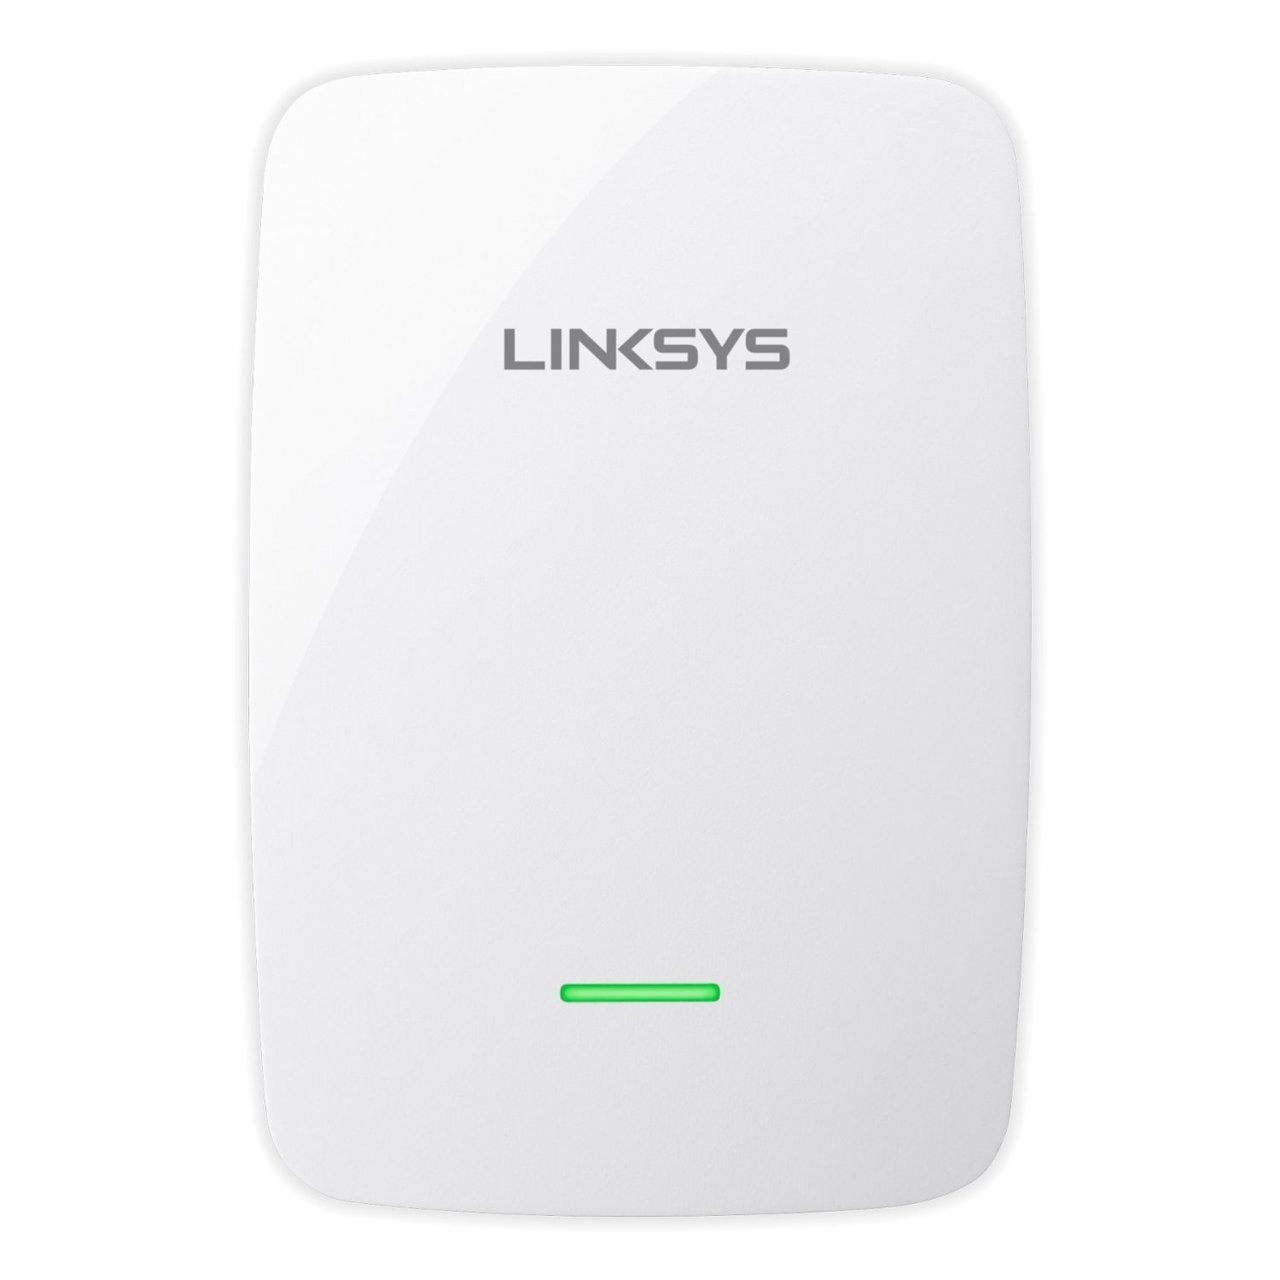 Linksys RE4100W Universal N600 Dual Band Range Extender with AUX Port for Music Streaming